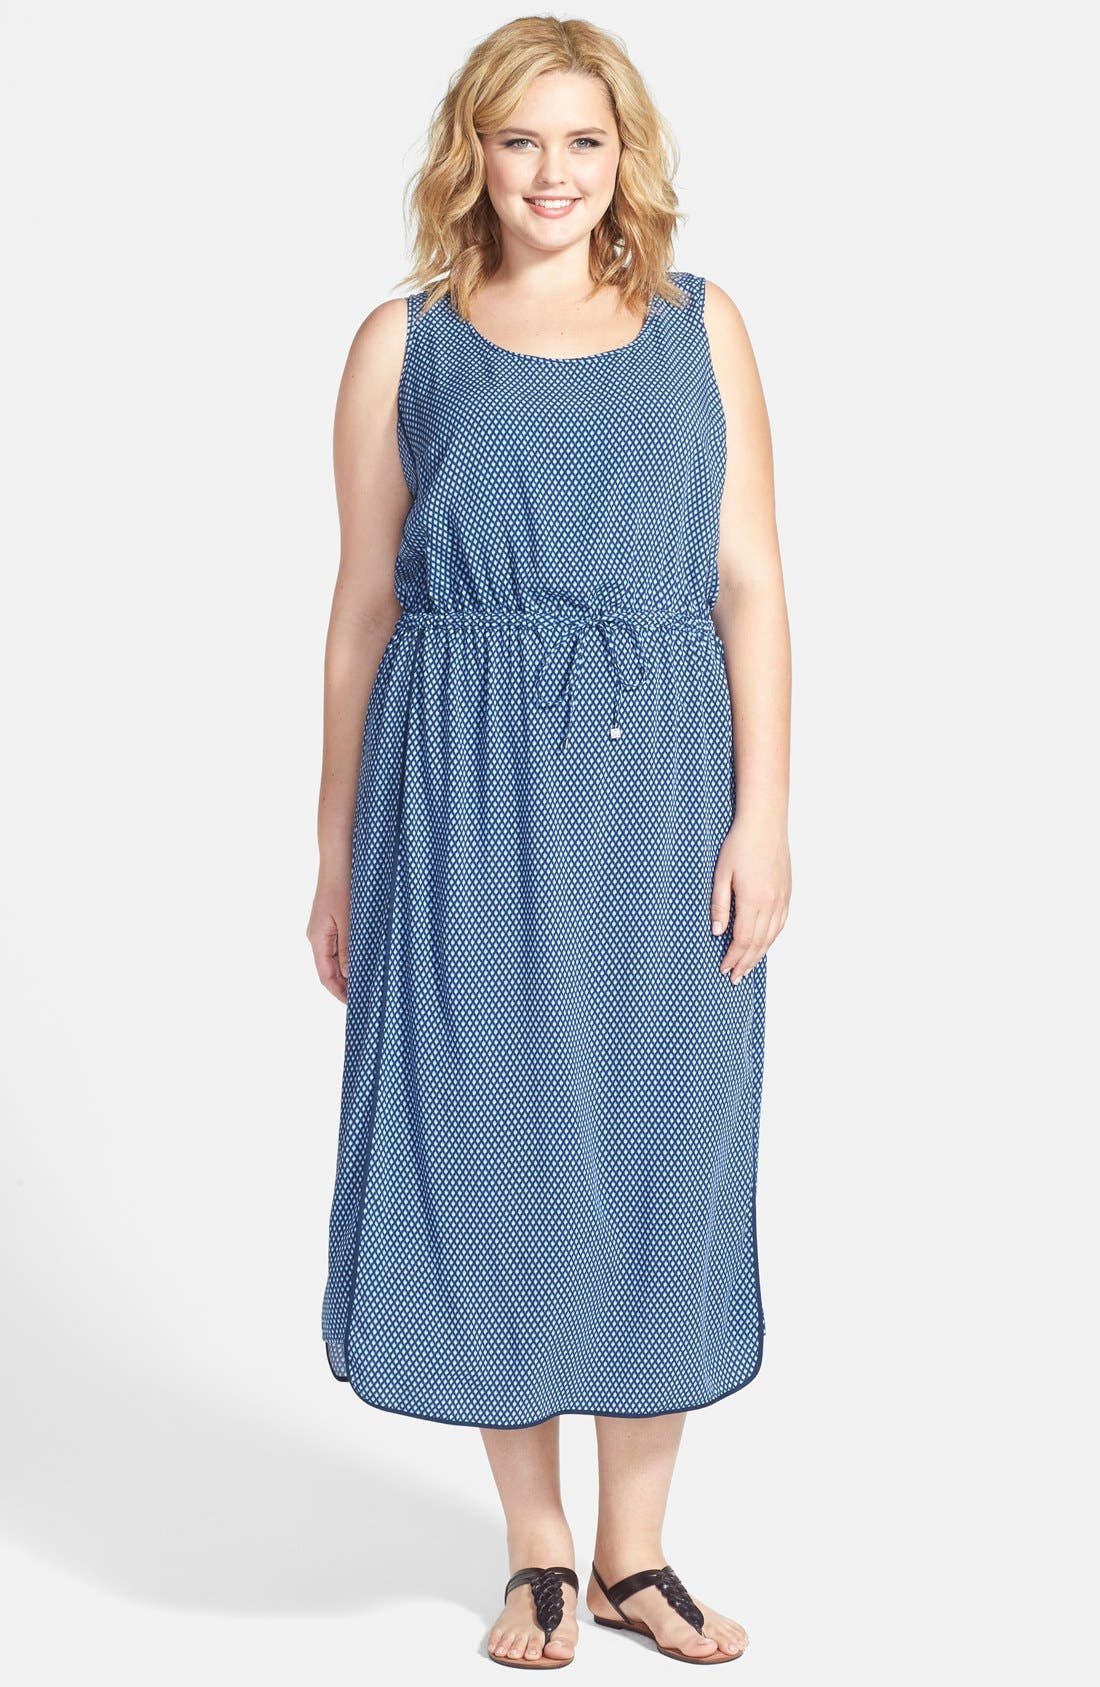 Alternate Image 1 Selected - Two by Vince Camuto 'Stylish Geo' Maxi Dress (Plus Size)